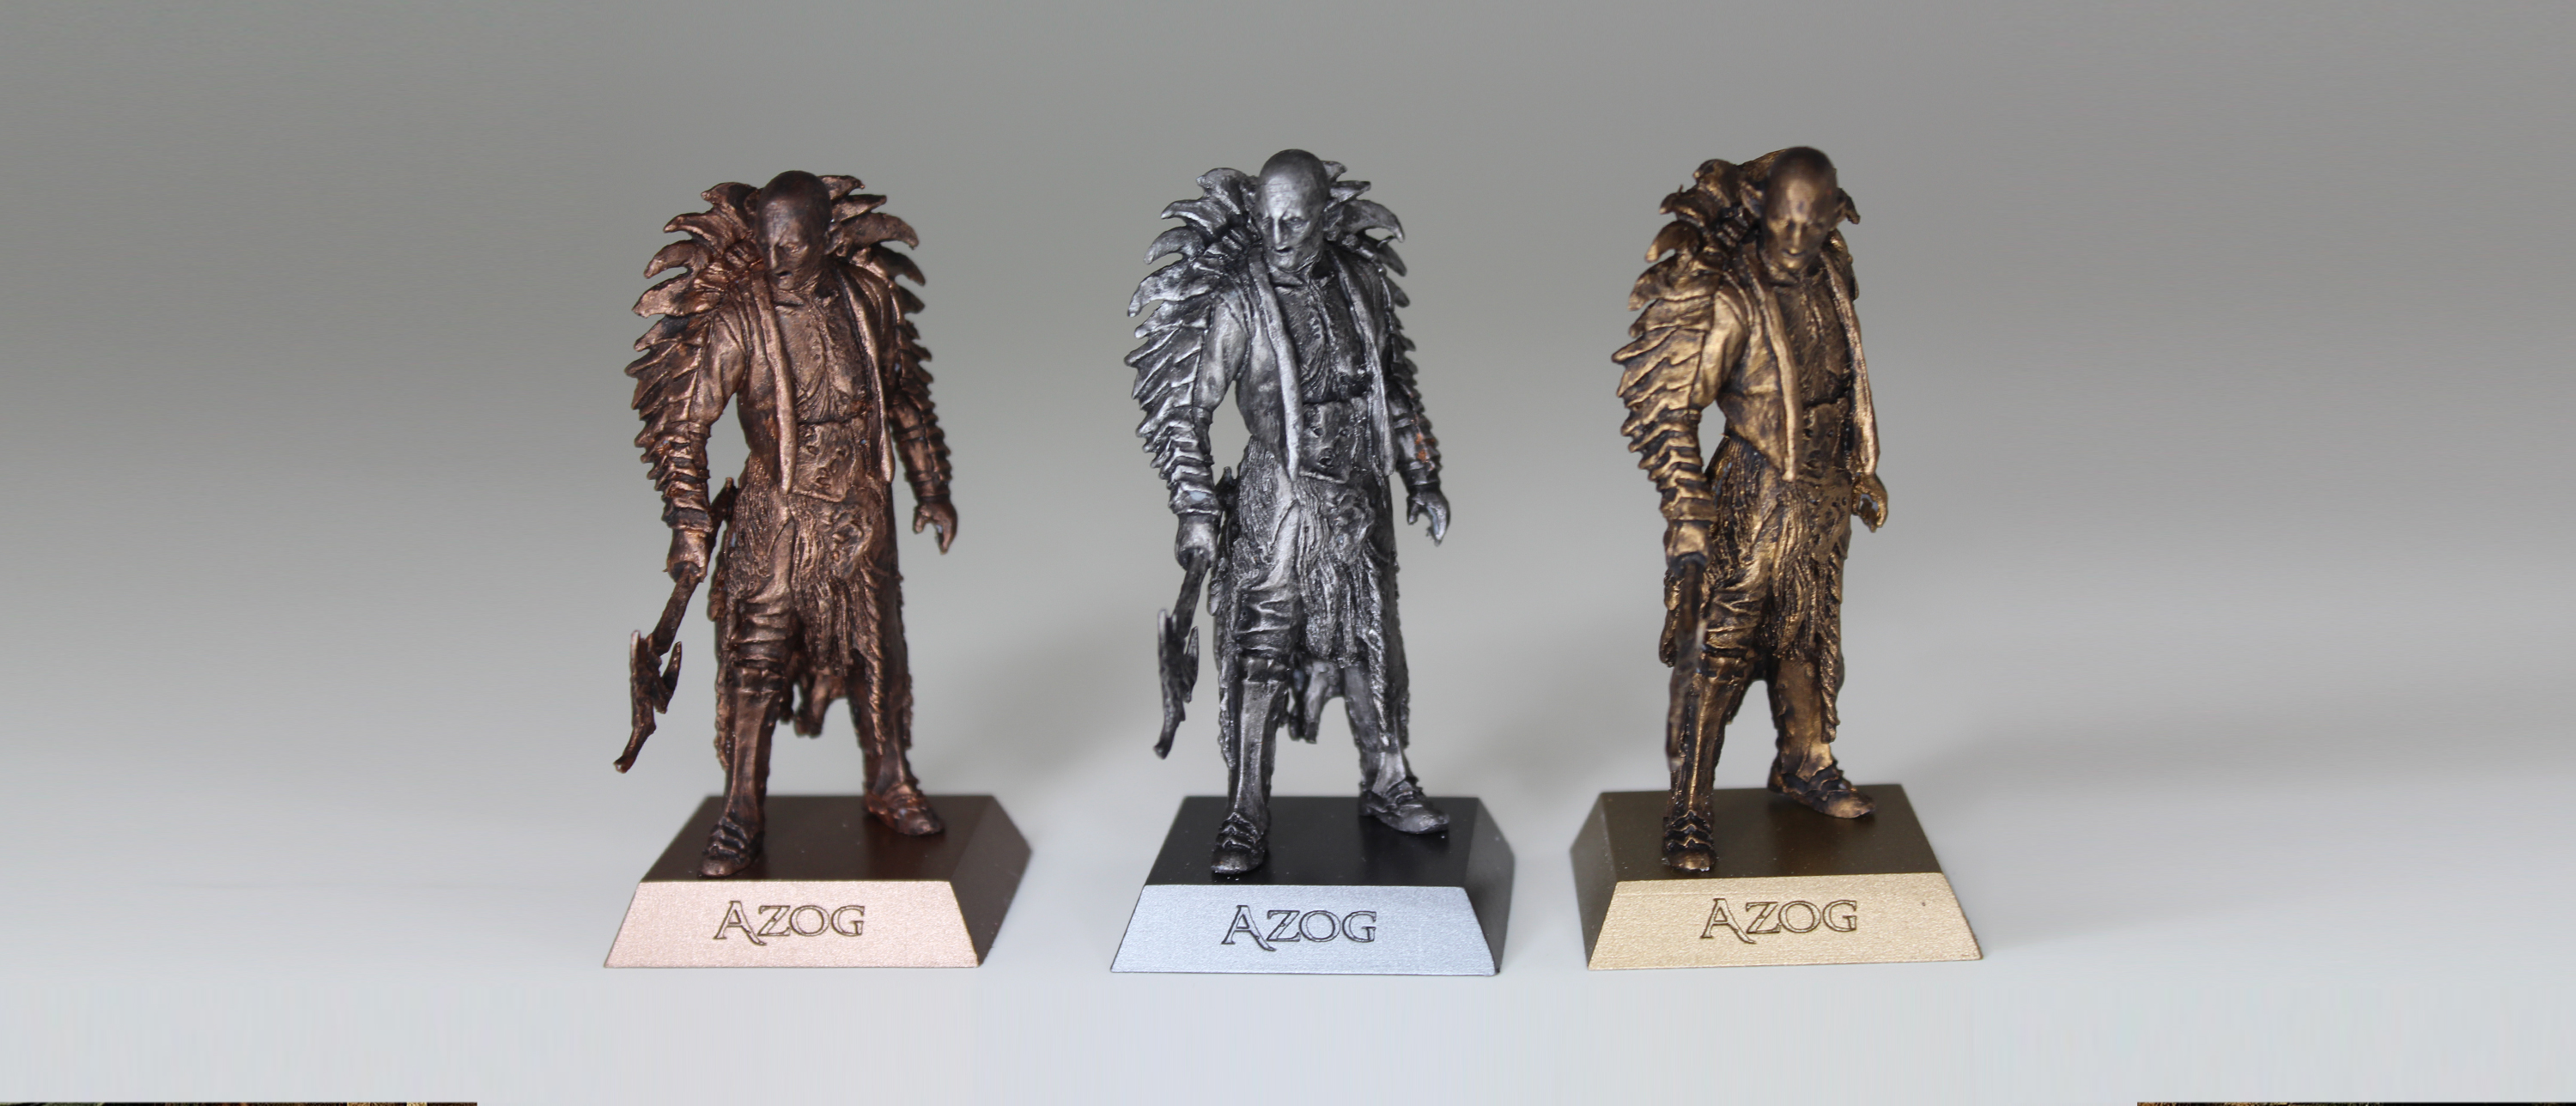 the hobbit sculptworks image 02